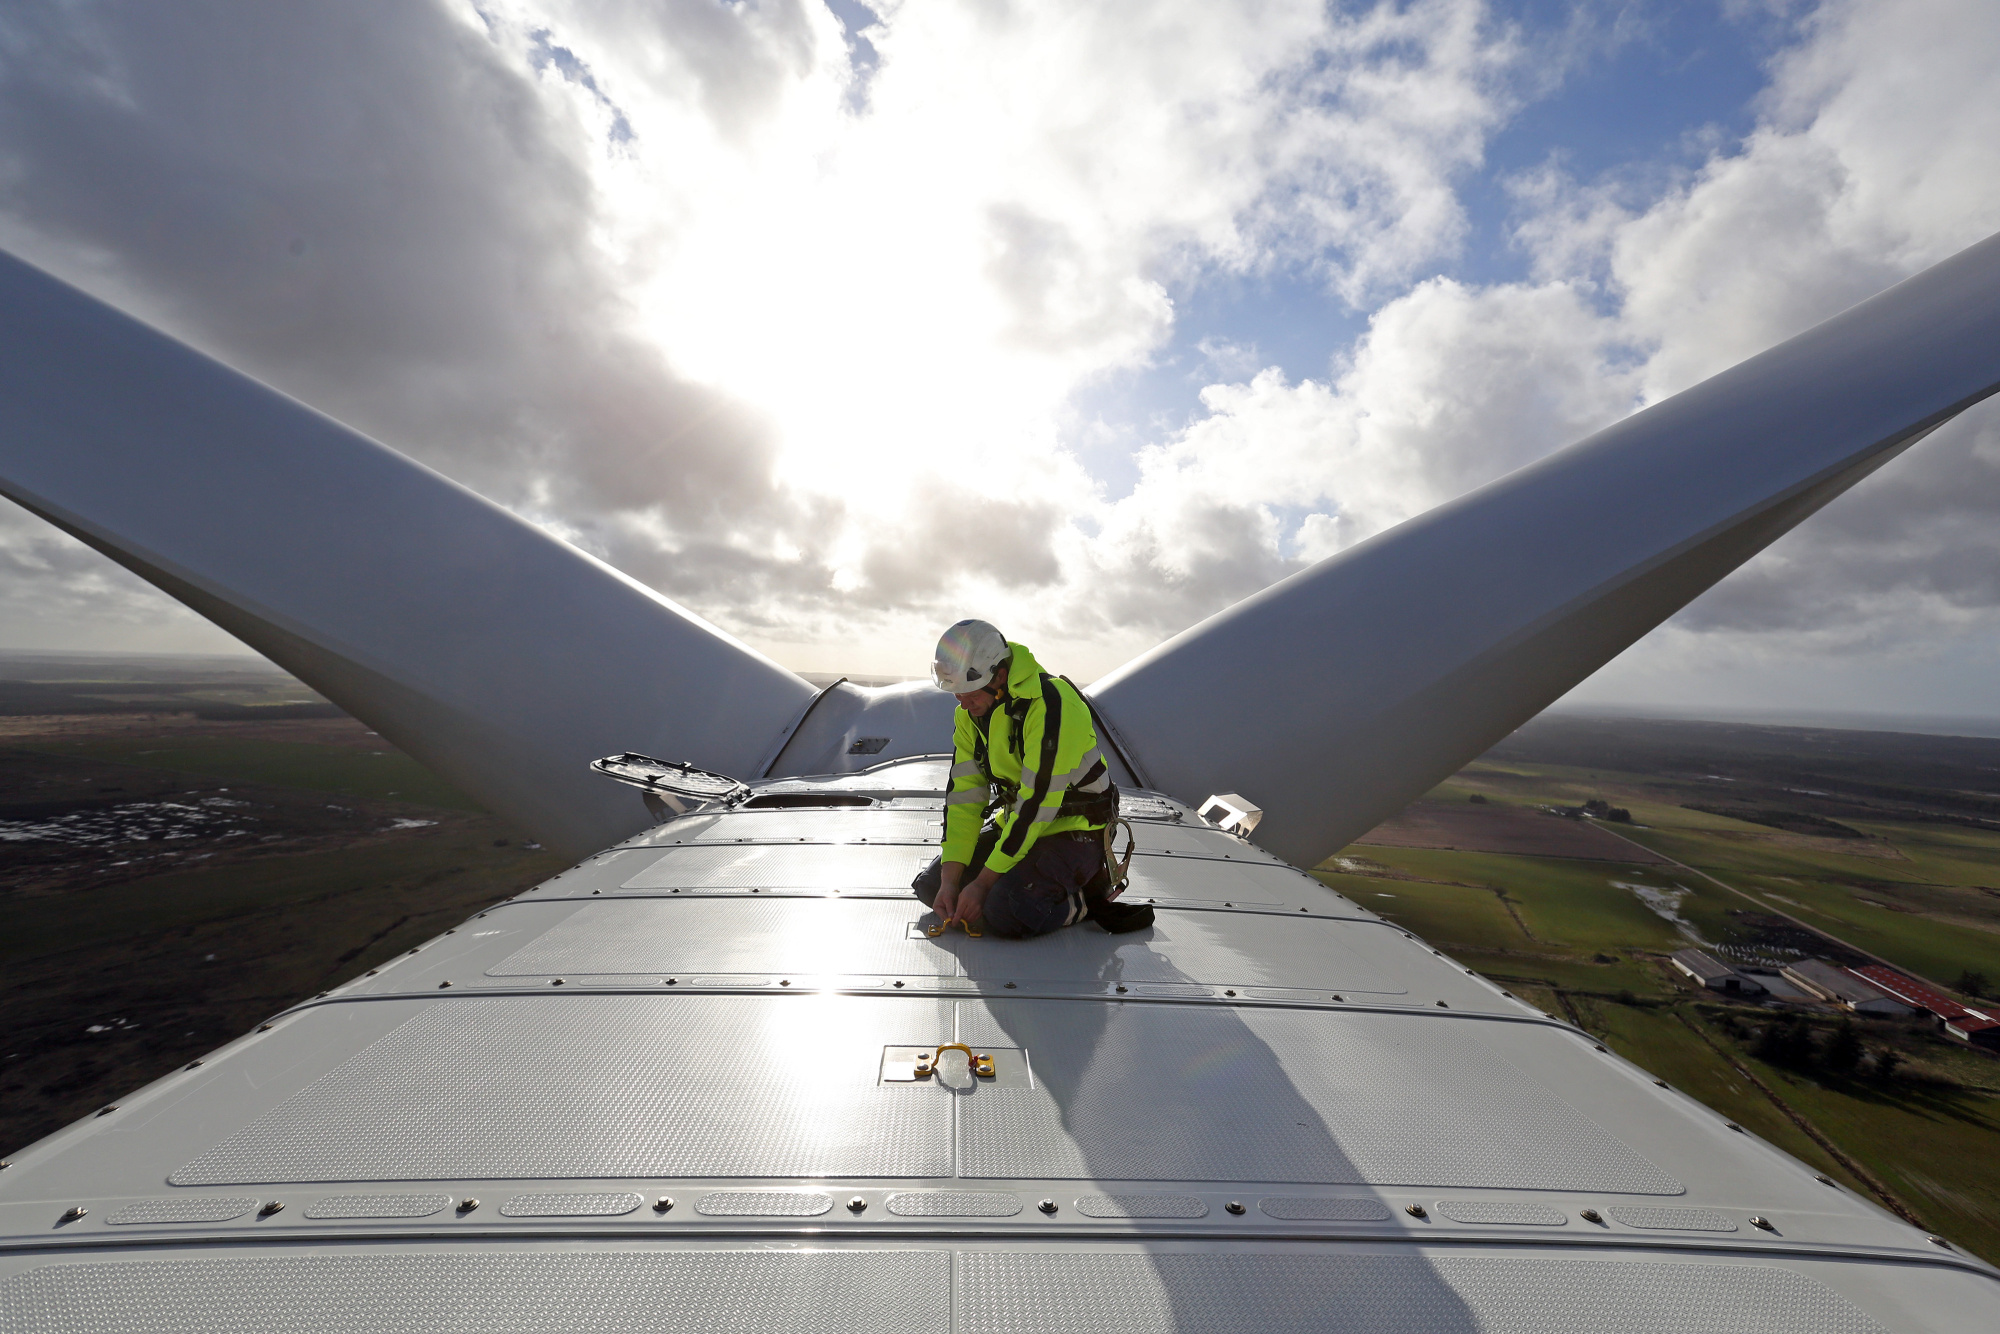 An employee checks a cable on the nacelle of a wind turbine during operational testing in Osterild, Denmark.